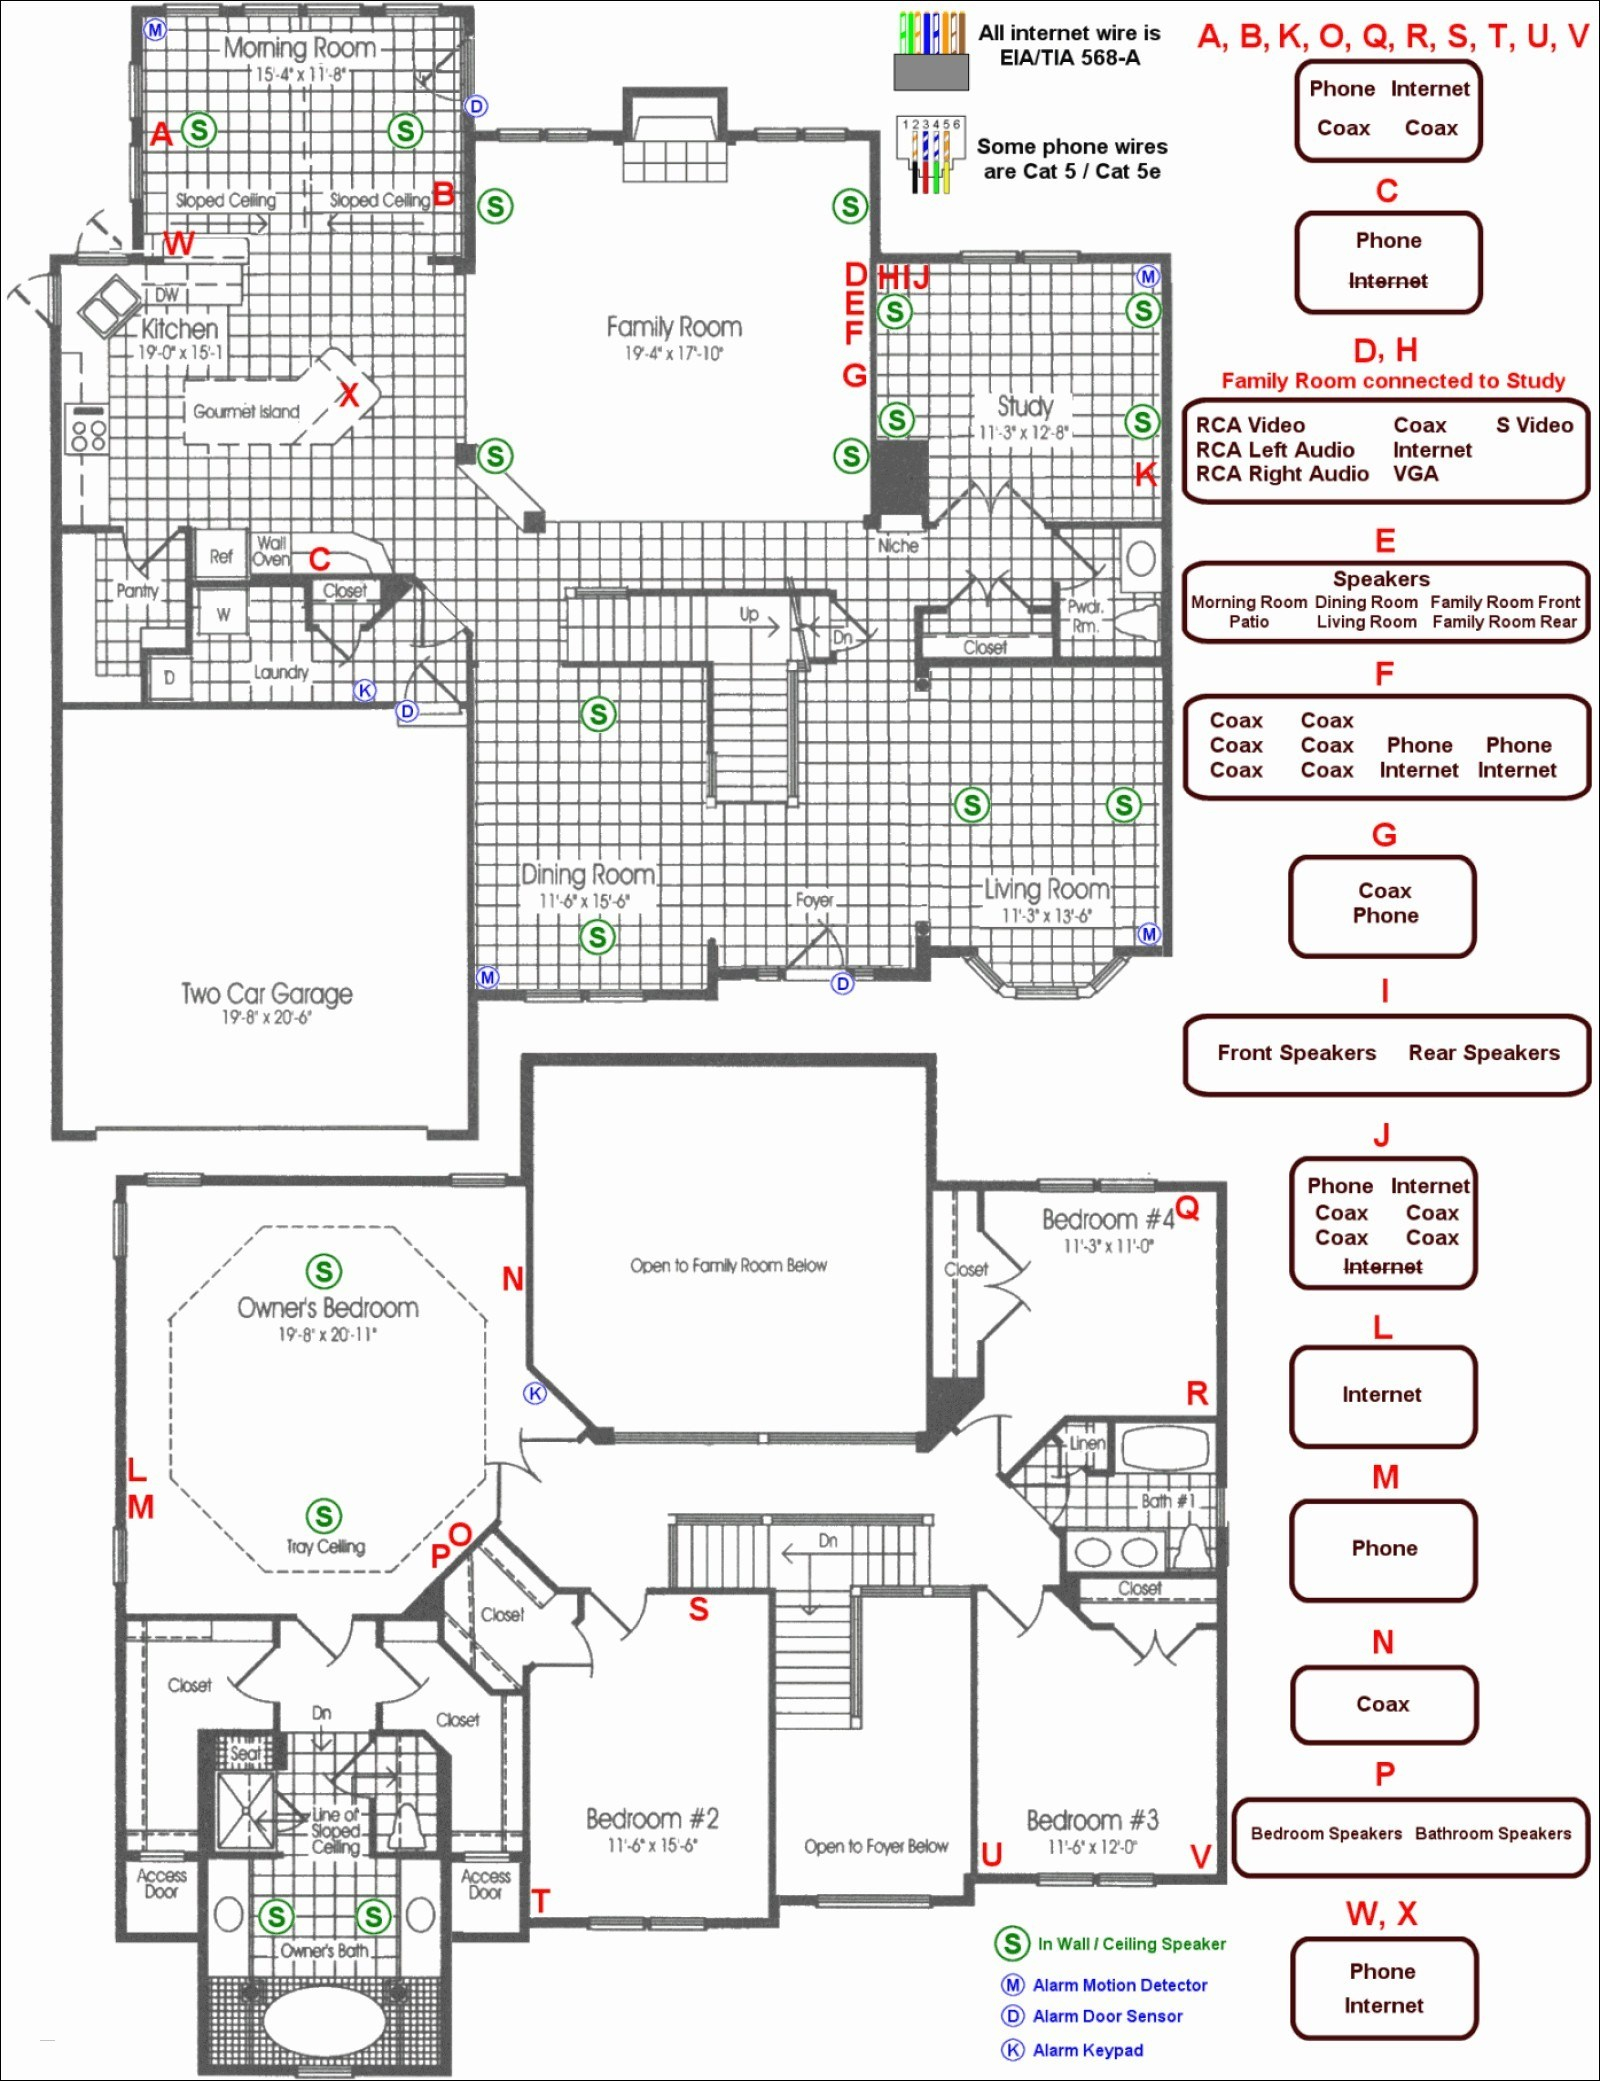 free wiring diagram software Collection-Wiring 20-p